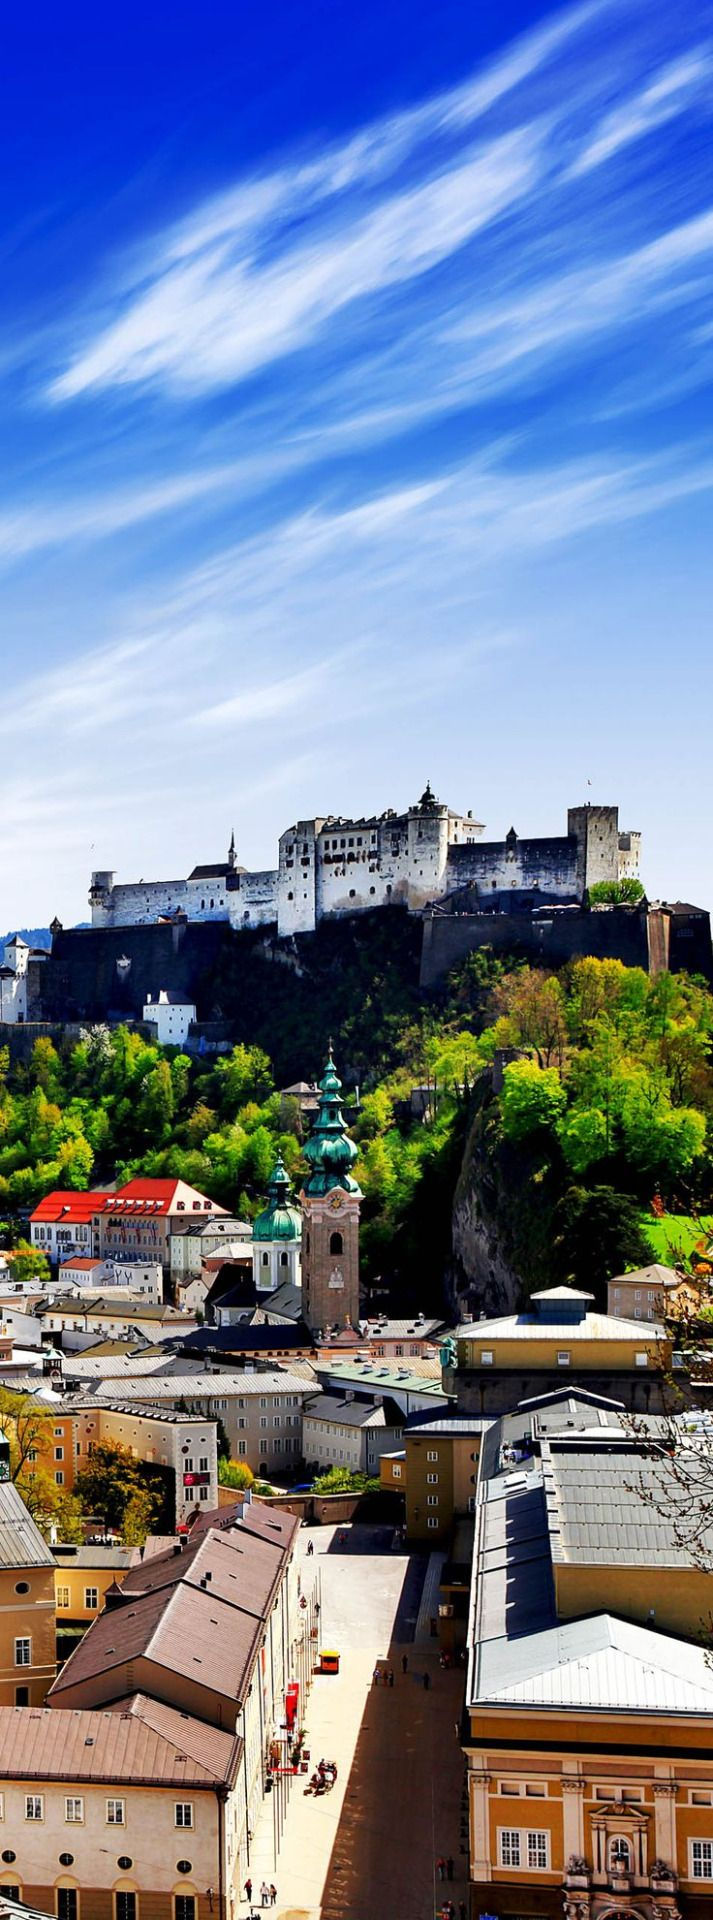 The Hohensalzburg fortress in Salzburg City. The Hohensalzburg fortress is the biggest medieval castle in Europe. Re-pinned for you by #EuropassEurope.